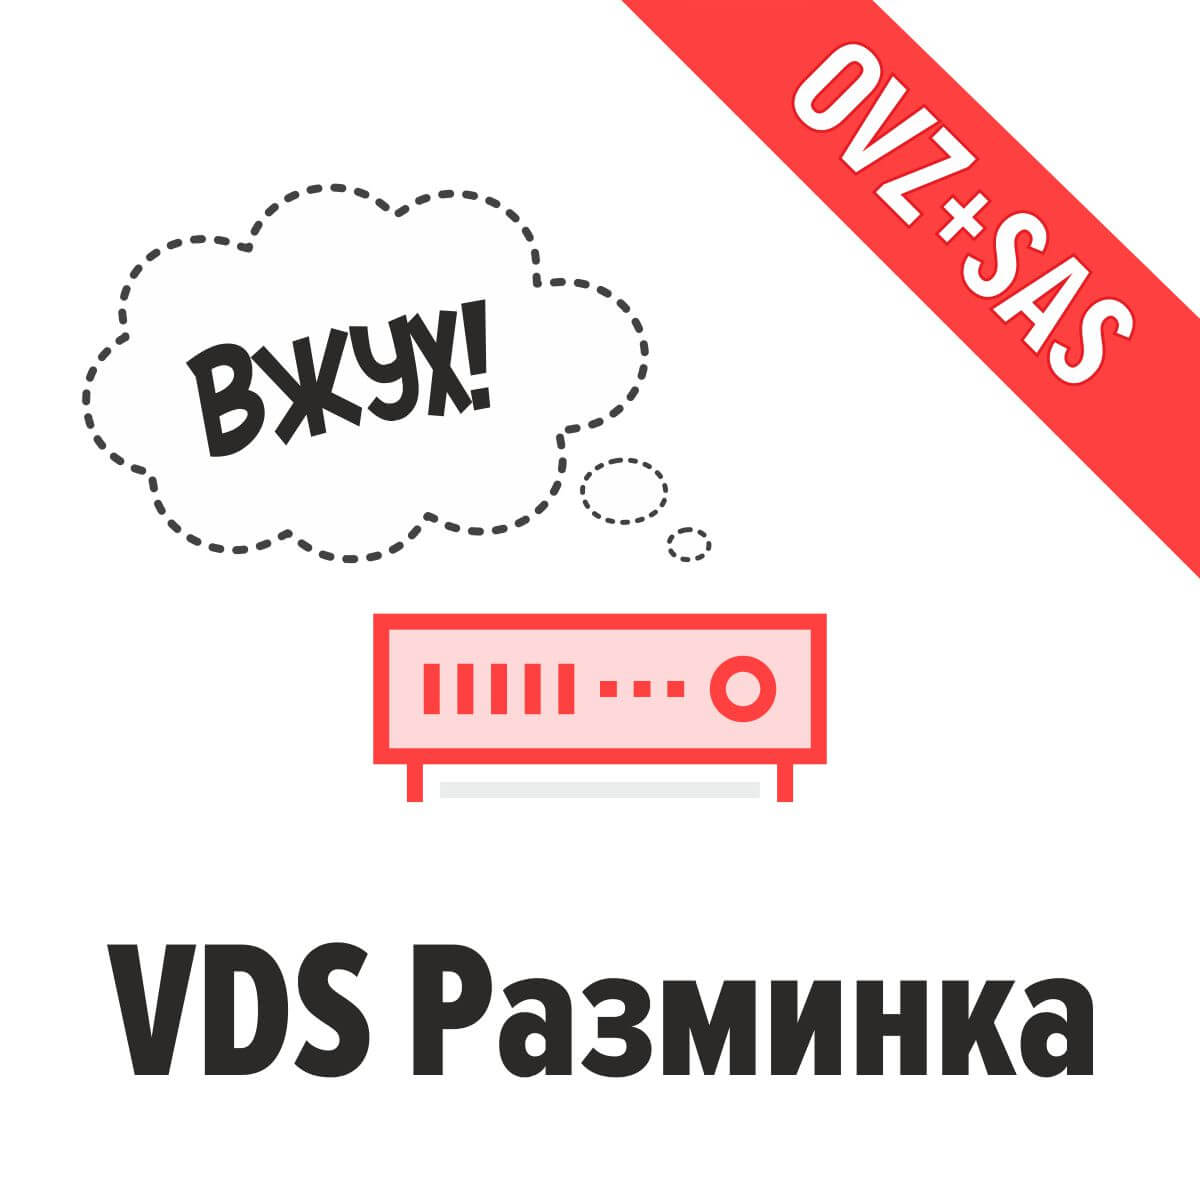 VDS Разминка (OpenVZ, SAS, 1 Core, 512Mb RAM, 10Gb HDD)